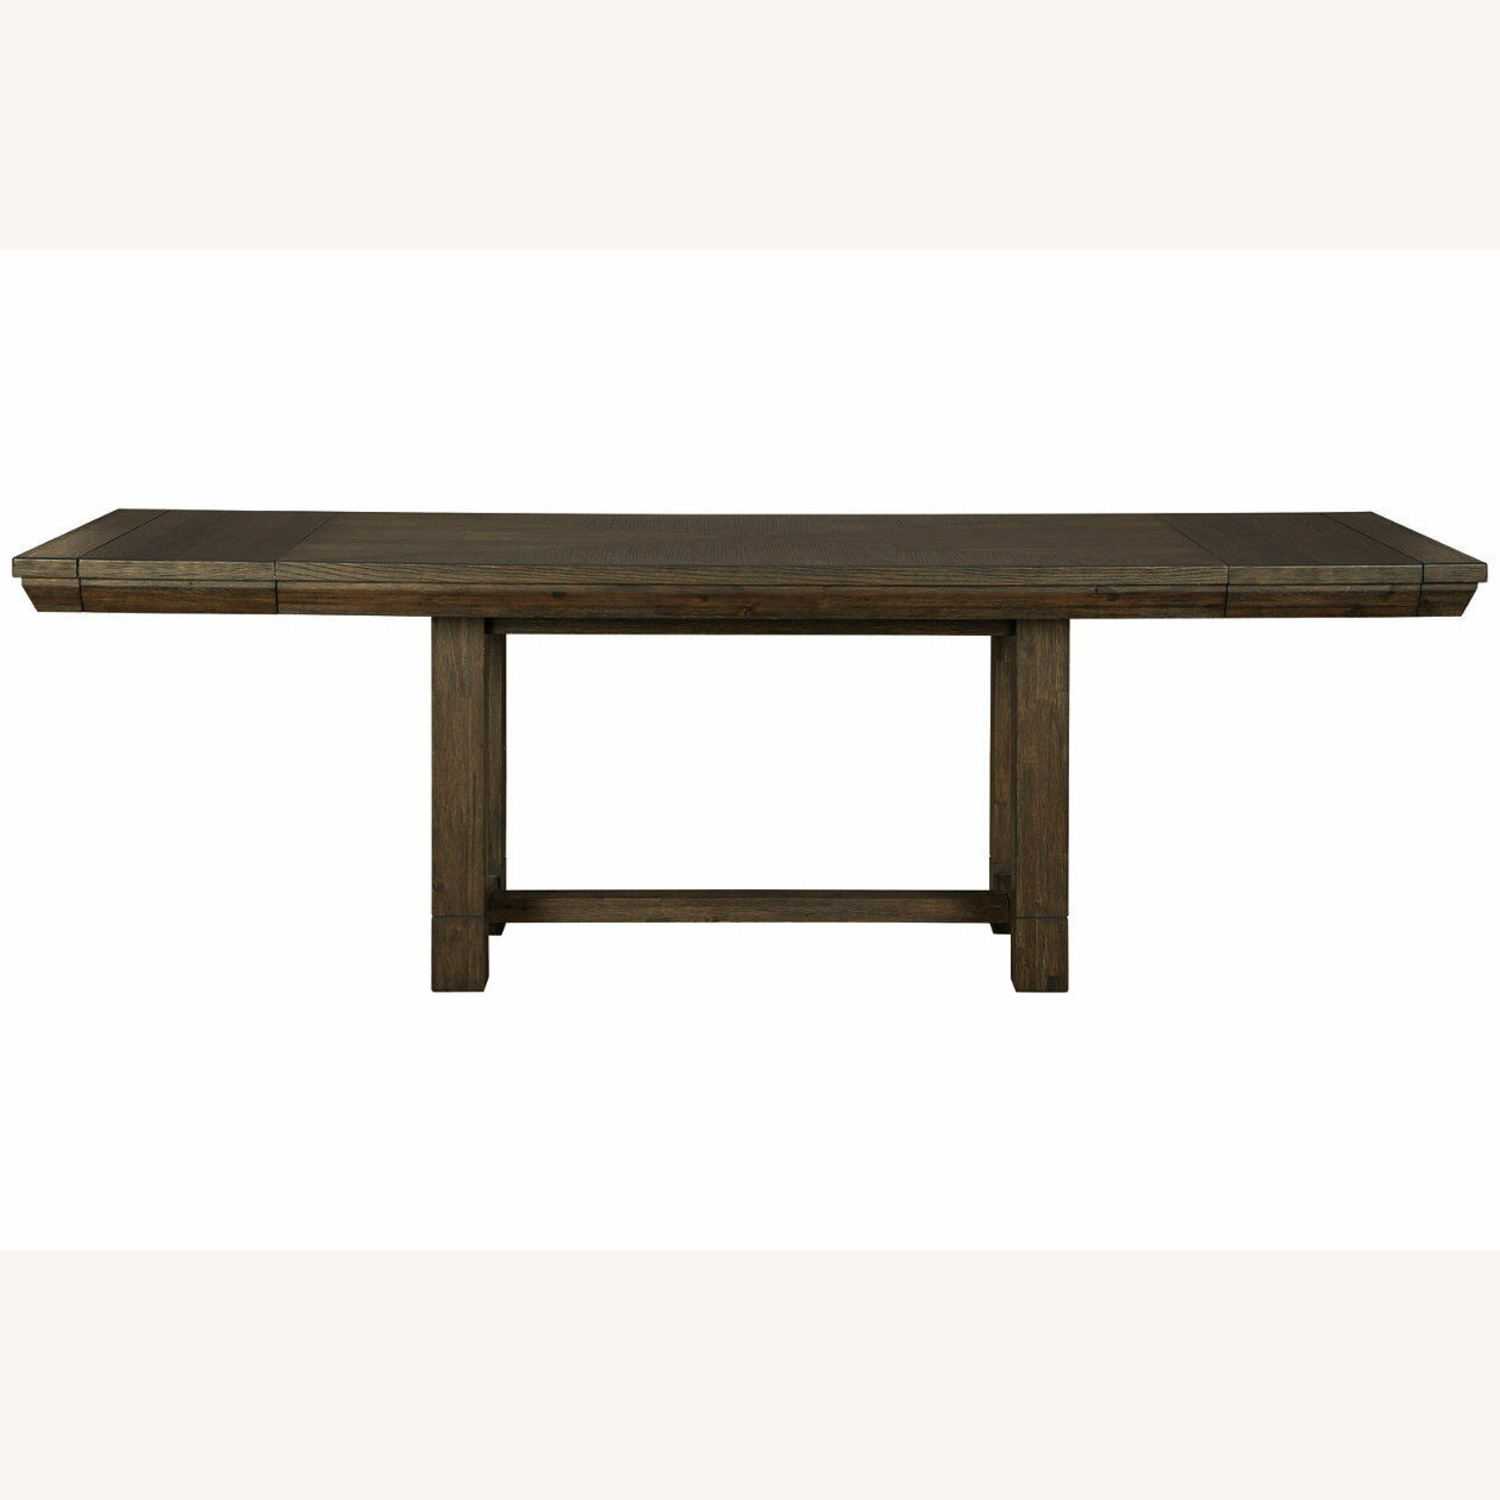 Ashley Furniture Dellbeck Extendable Dining Table - image-2